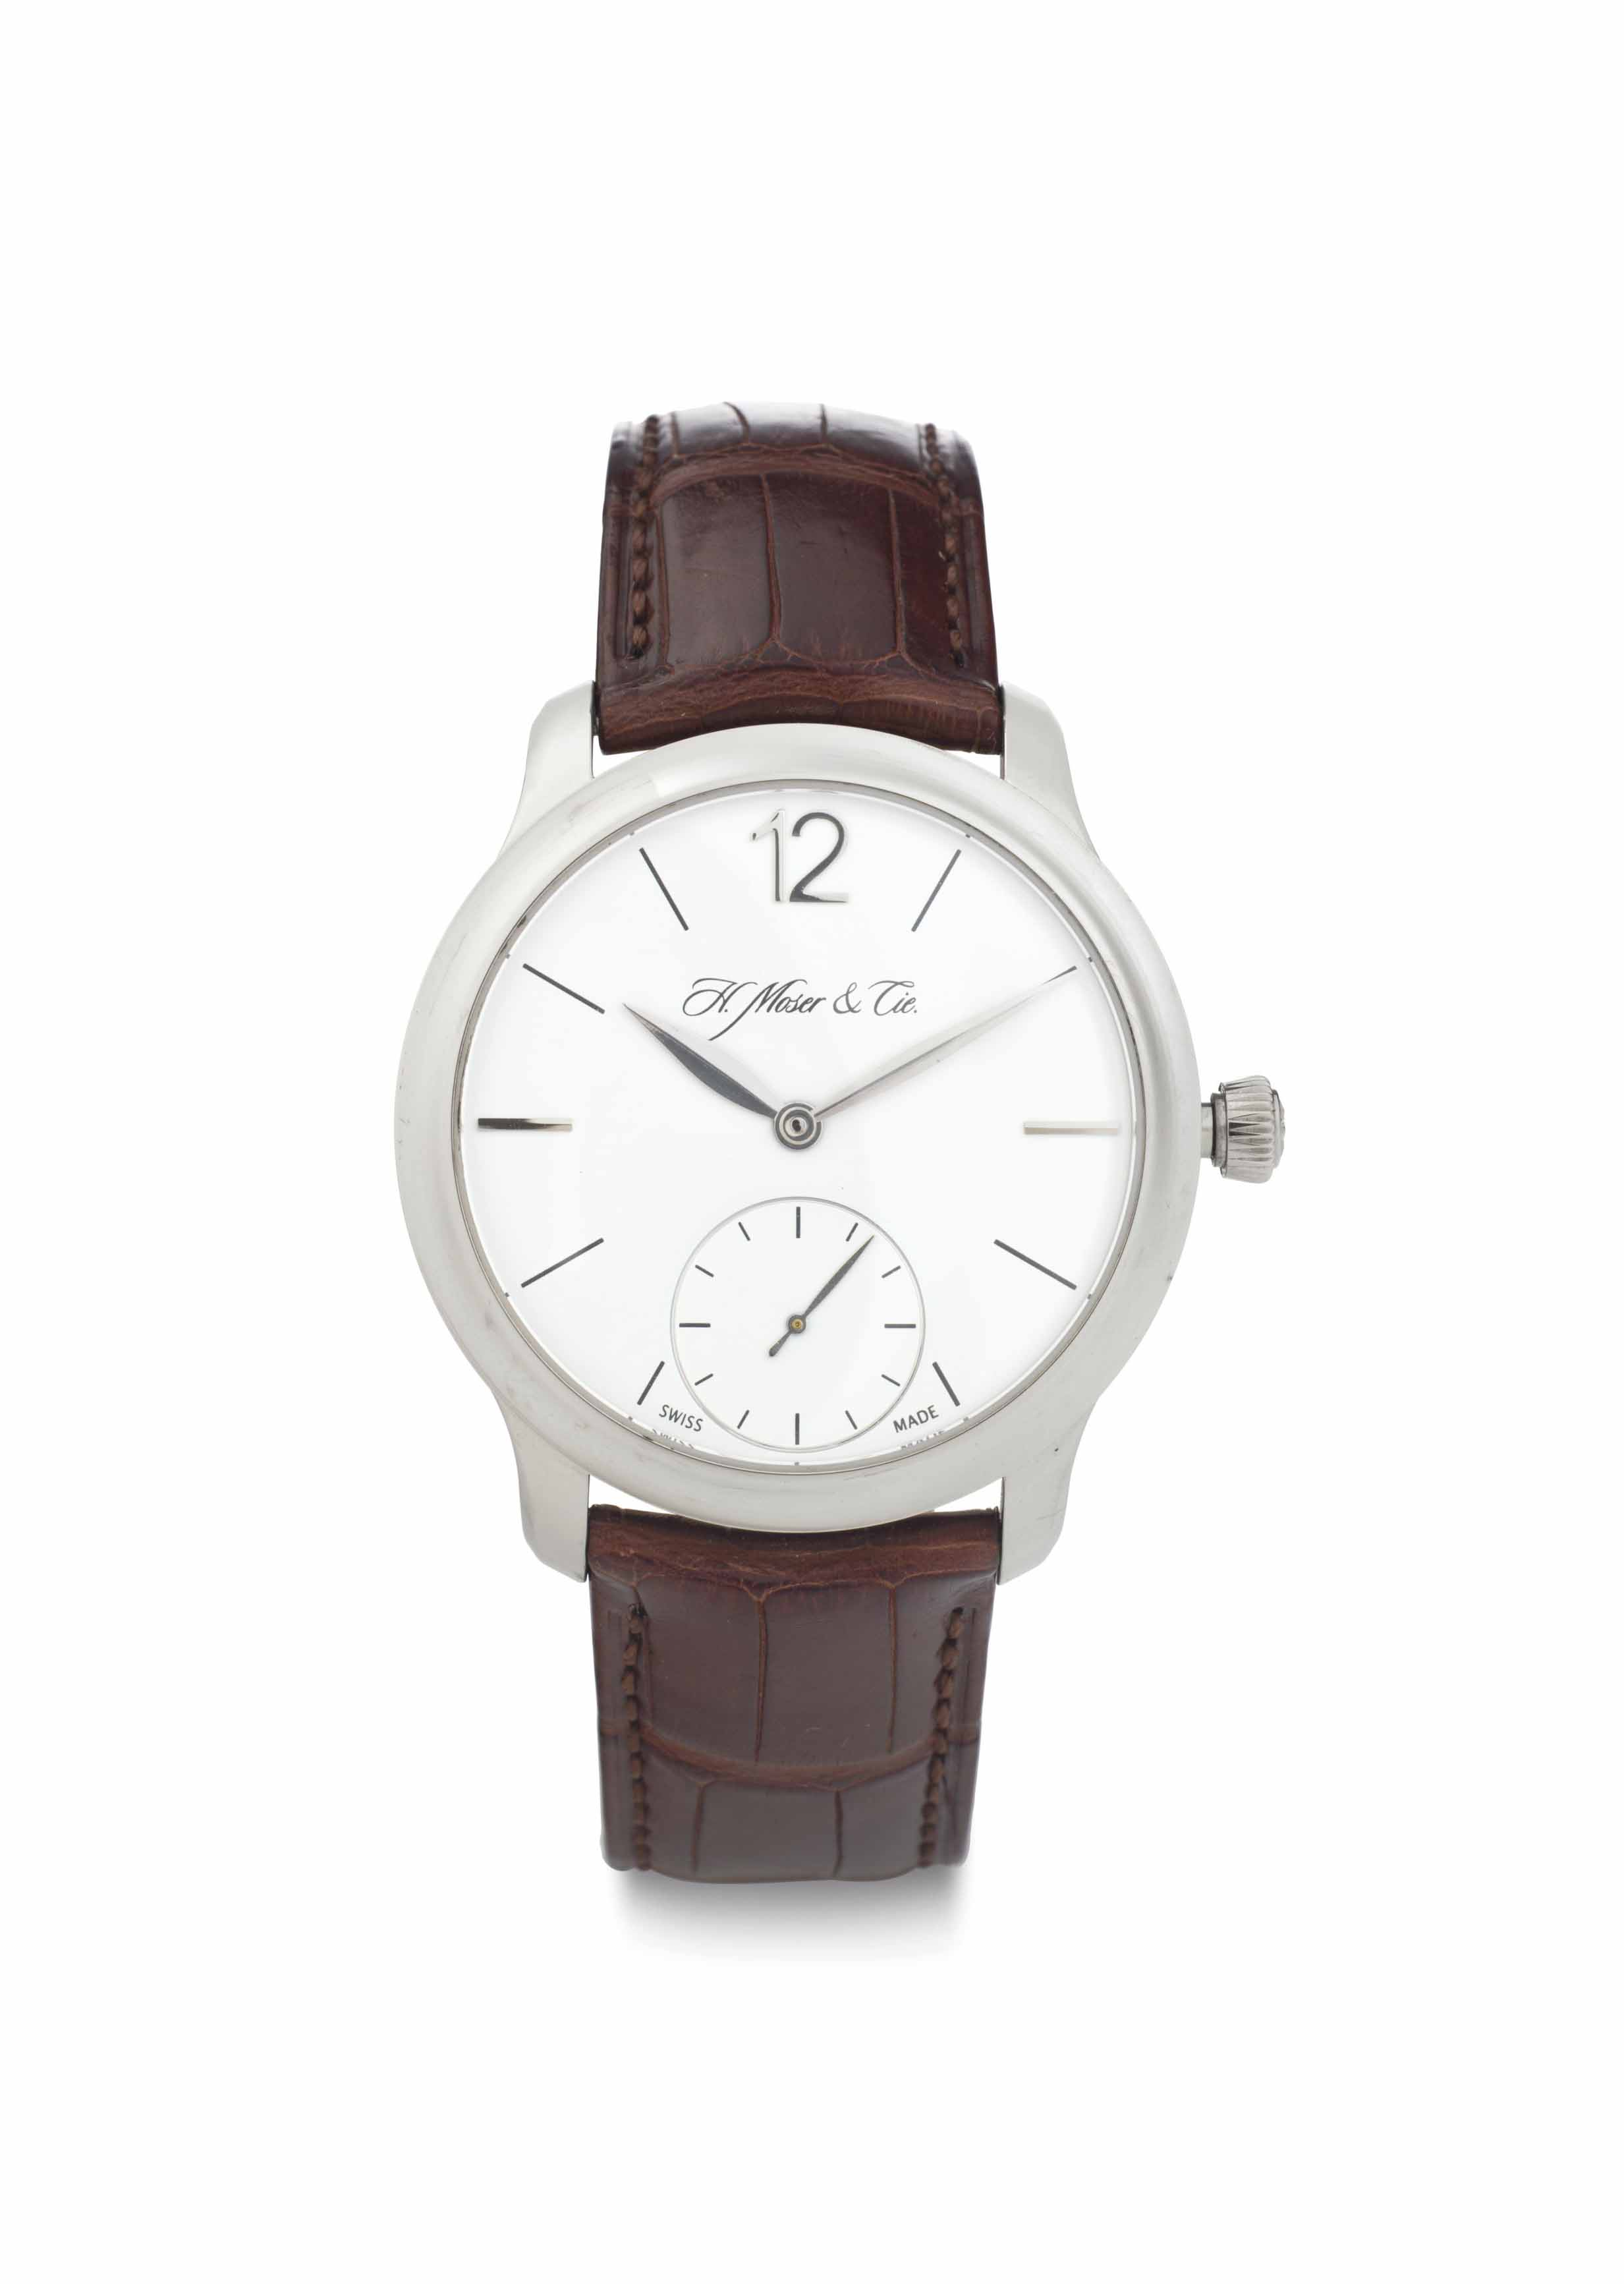 H. Moser & Cie. An 18k White Gold Wristwatch with Power Reserve